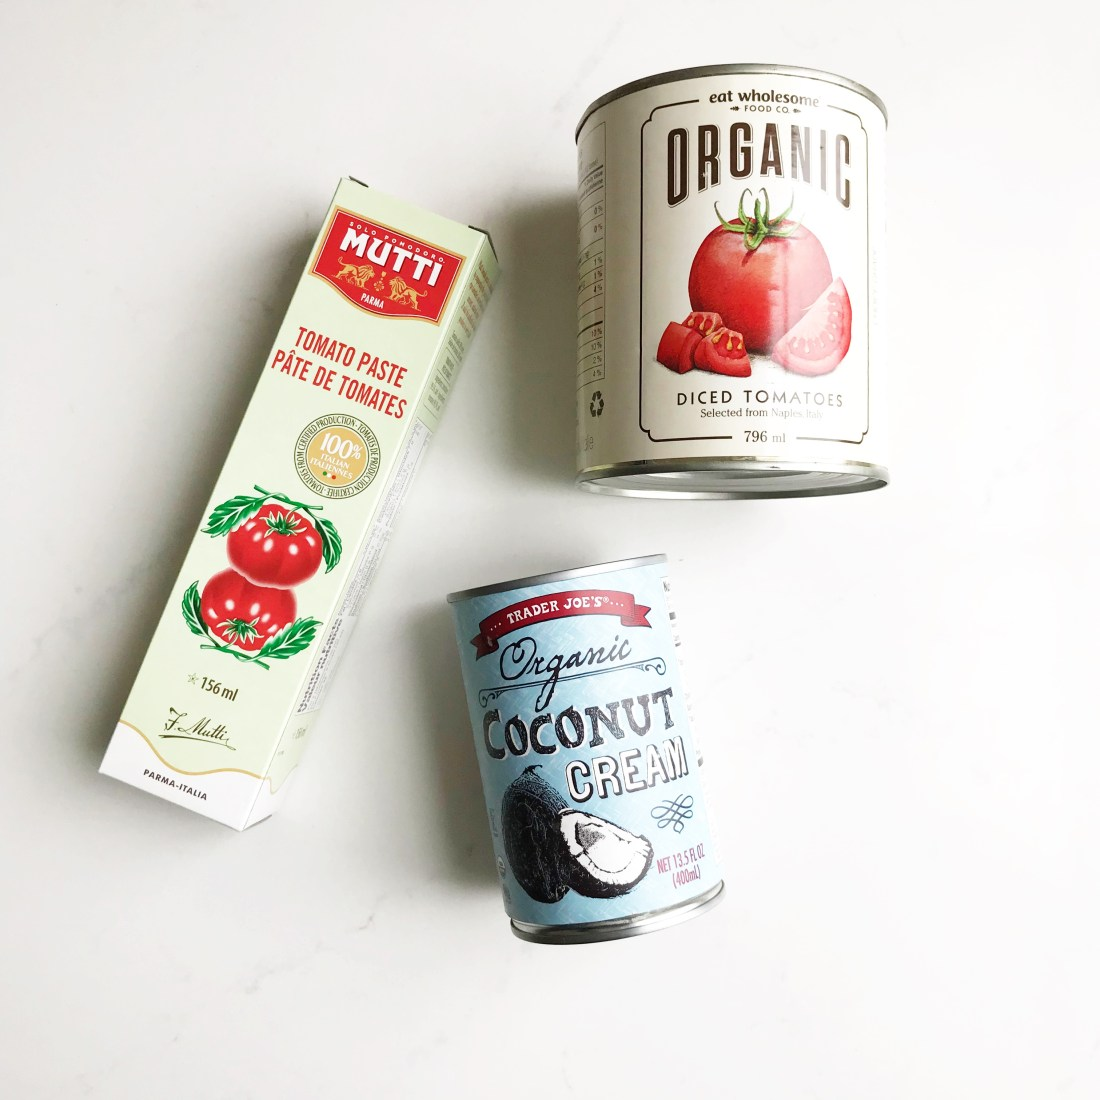 coconut cream, organic diced tomatoes and tomato paste: some of my must have condiments!